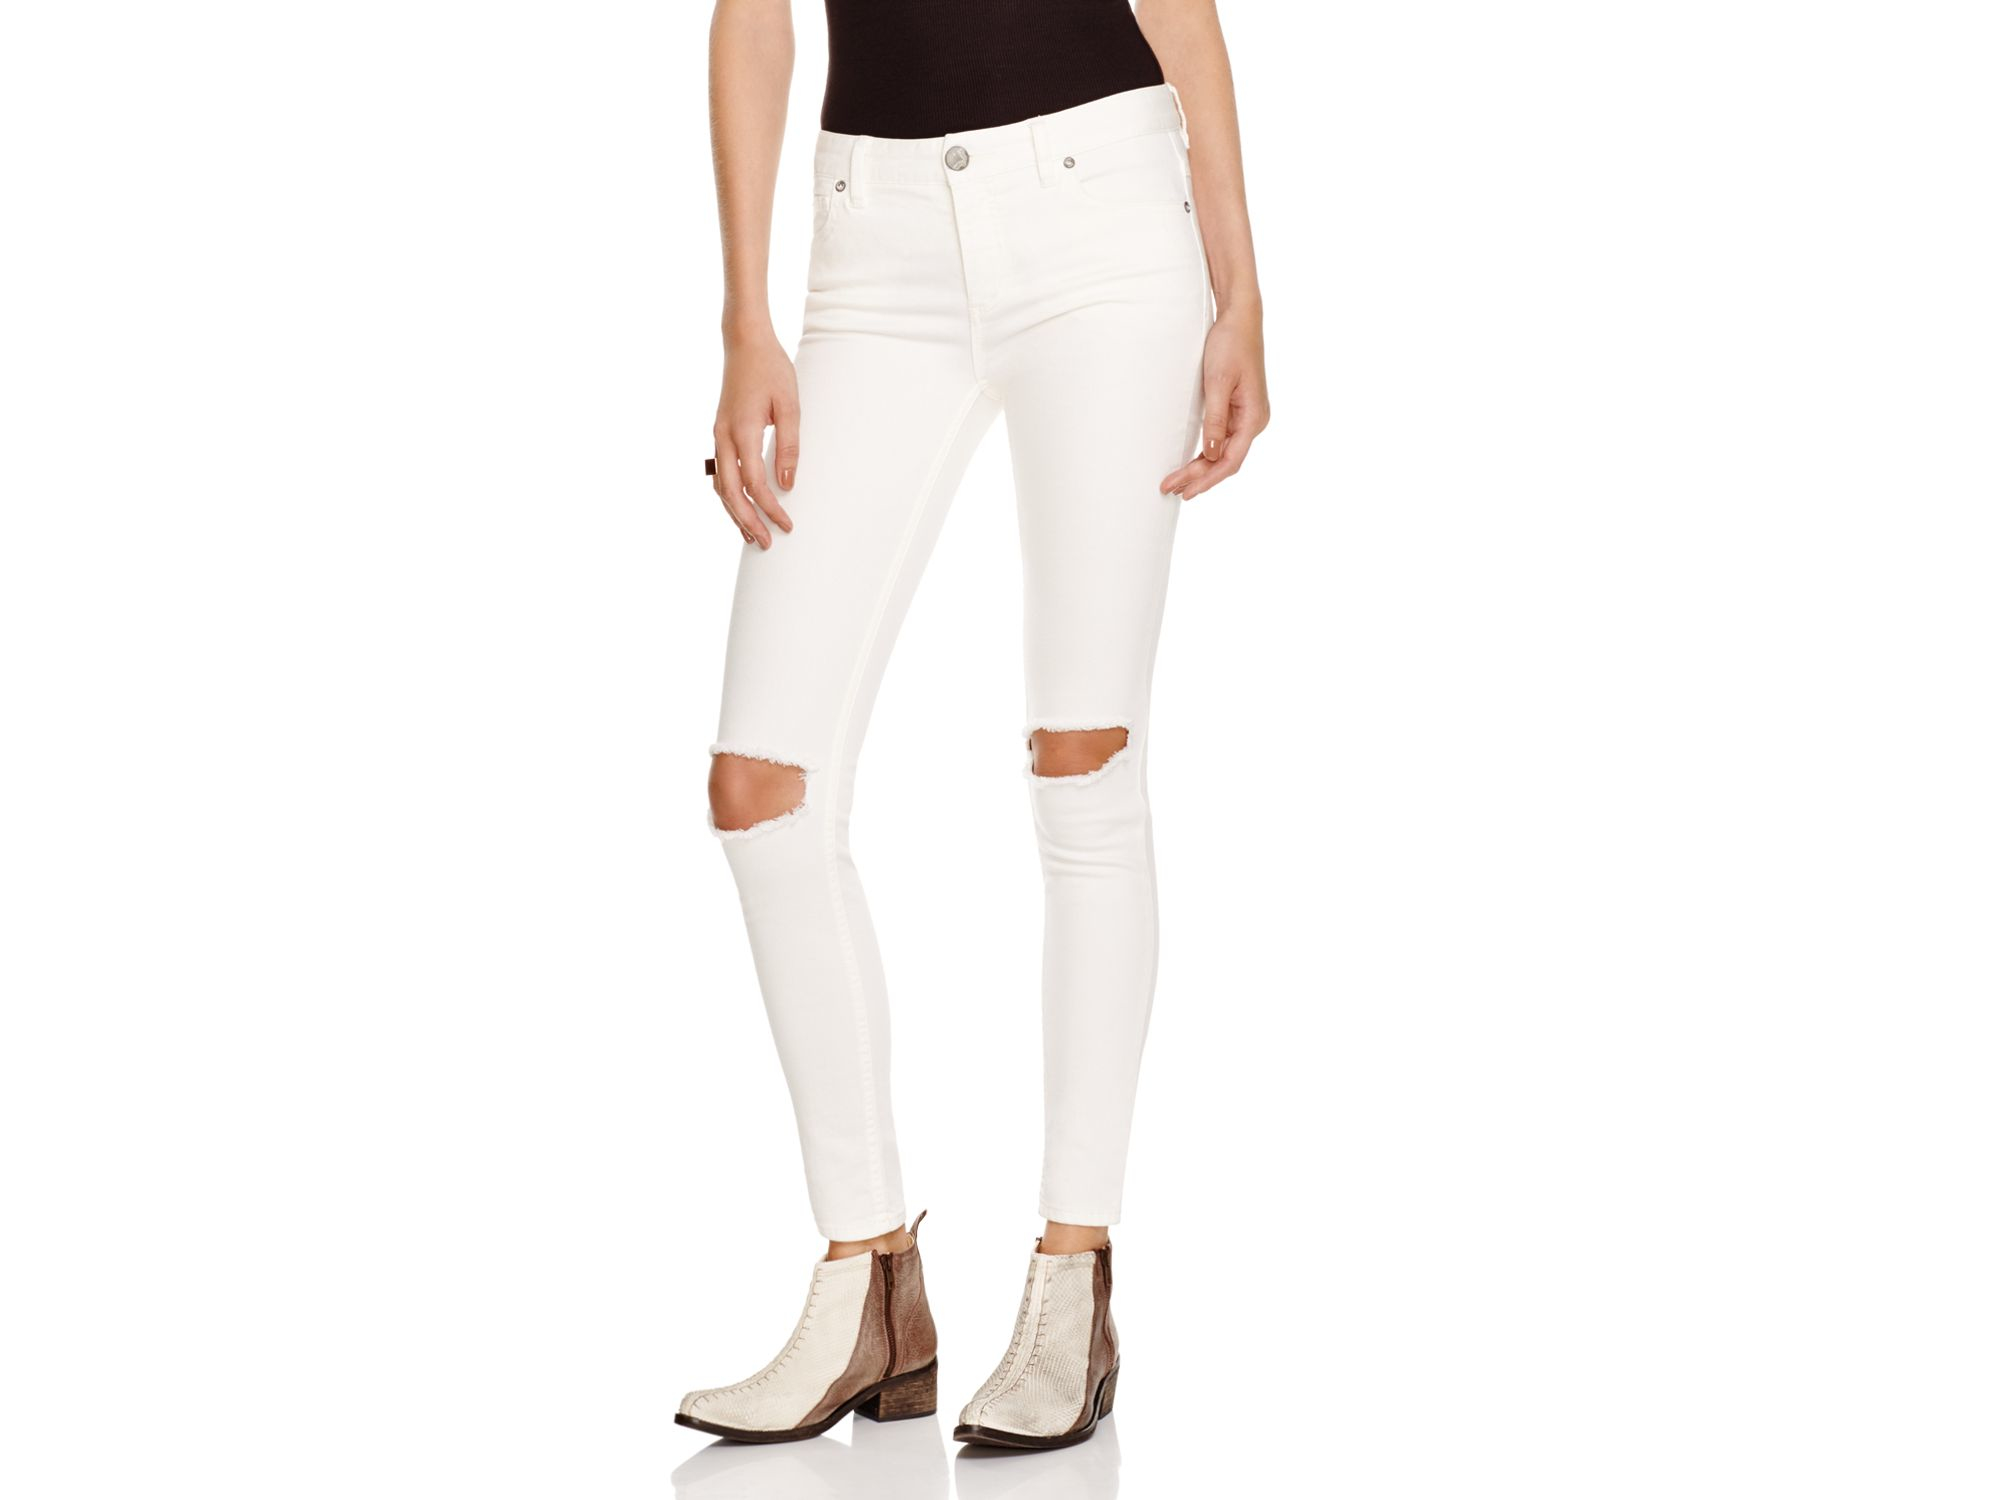 60% off Free People Denim - Free People White Skinny Jeans size 26 ...